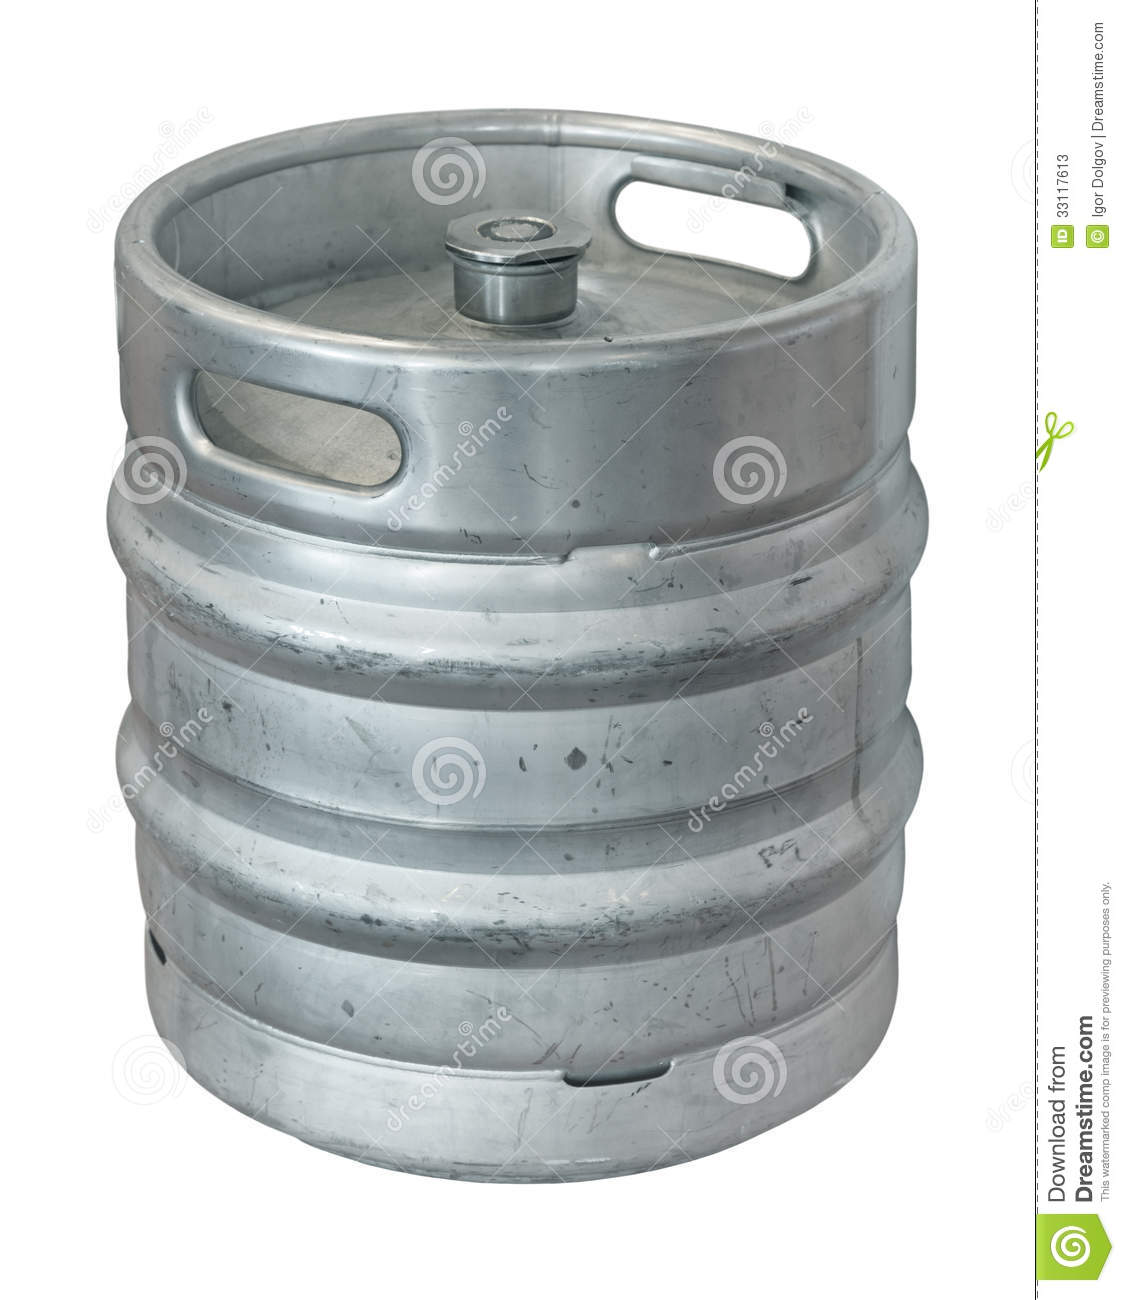 Beer keg  isolated on white background Beer Keg